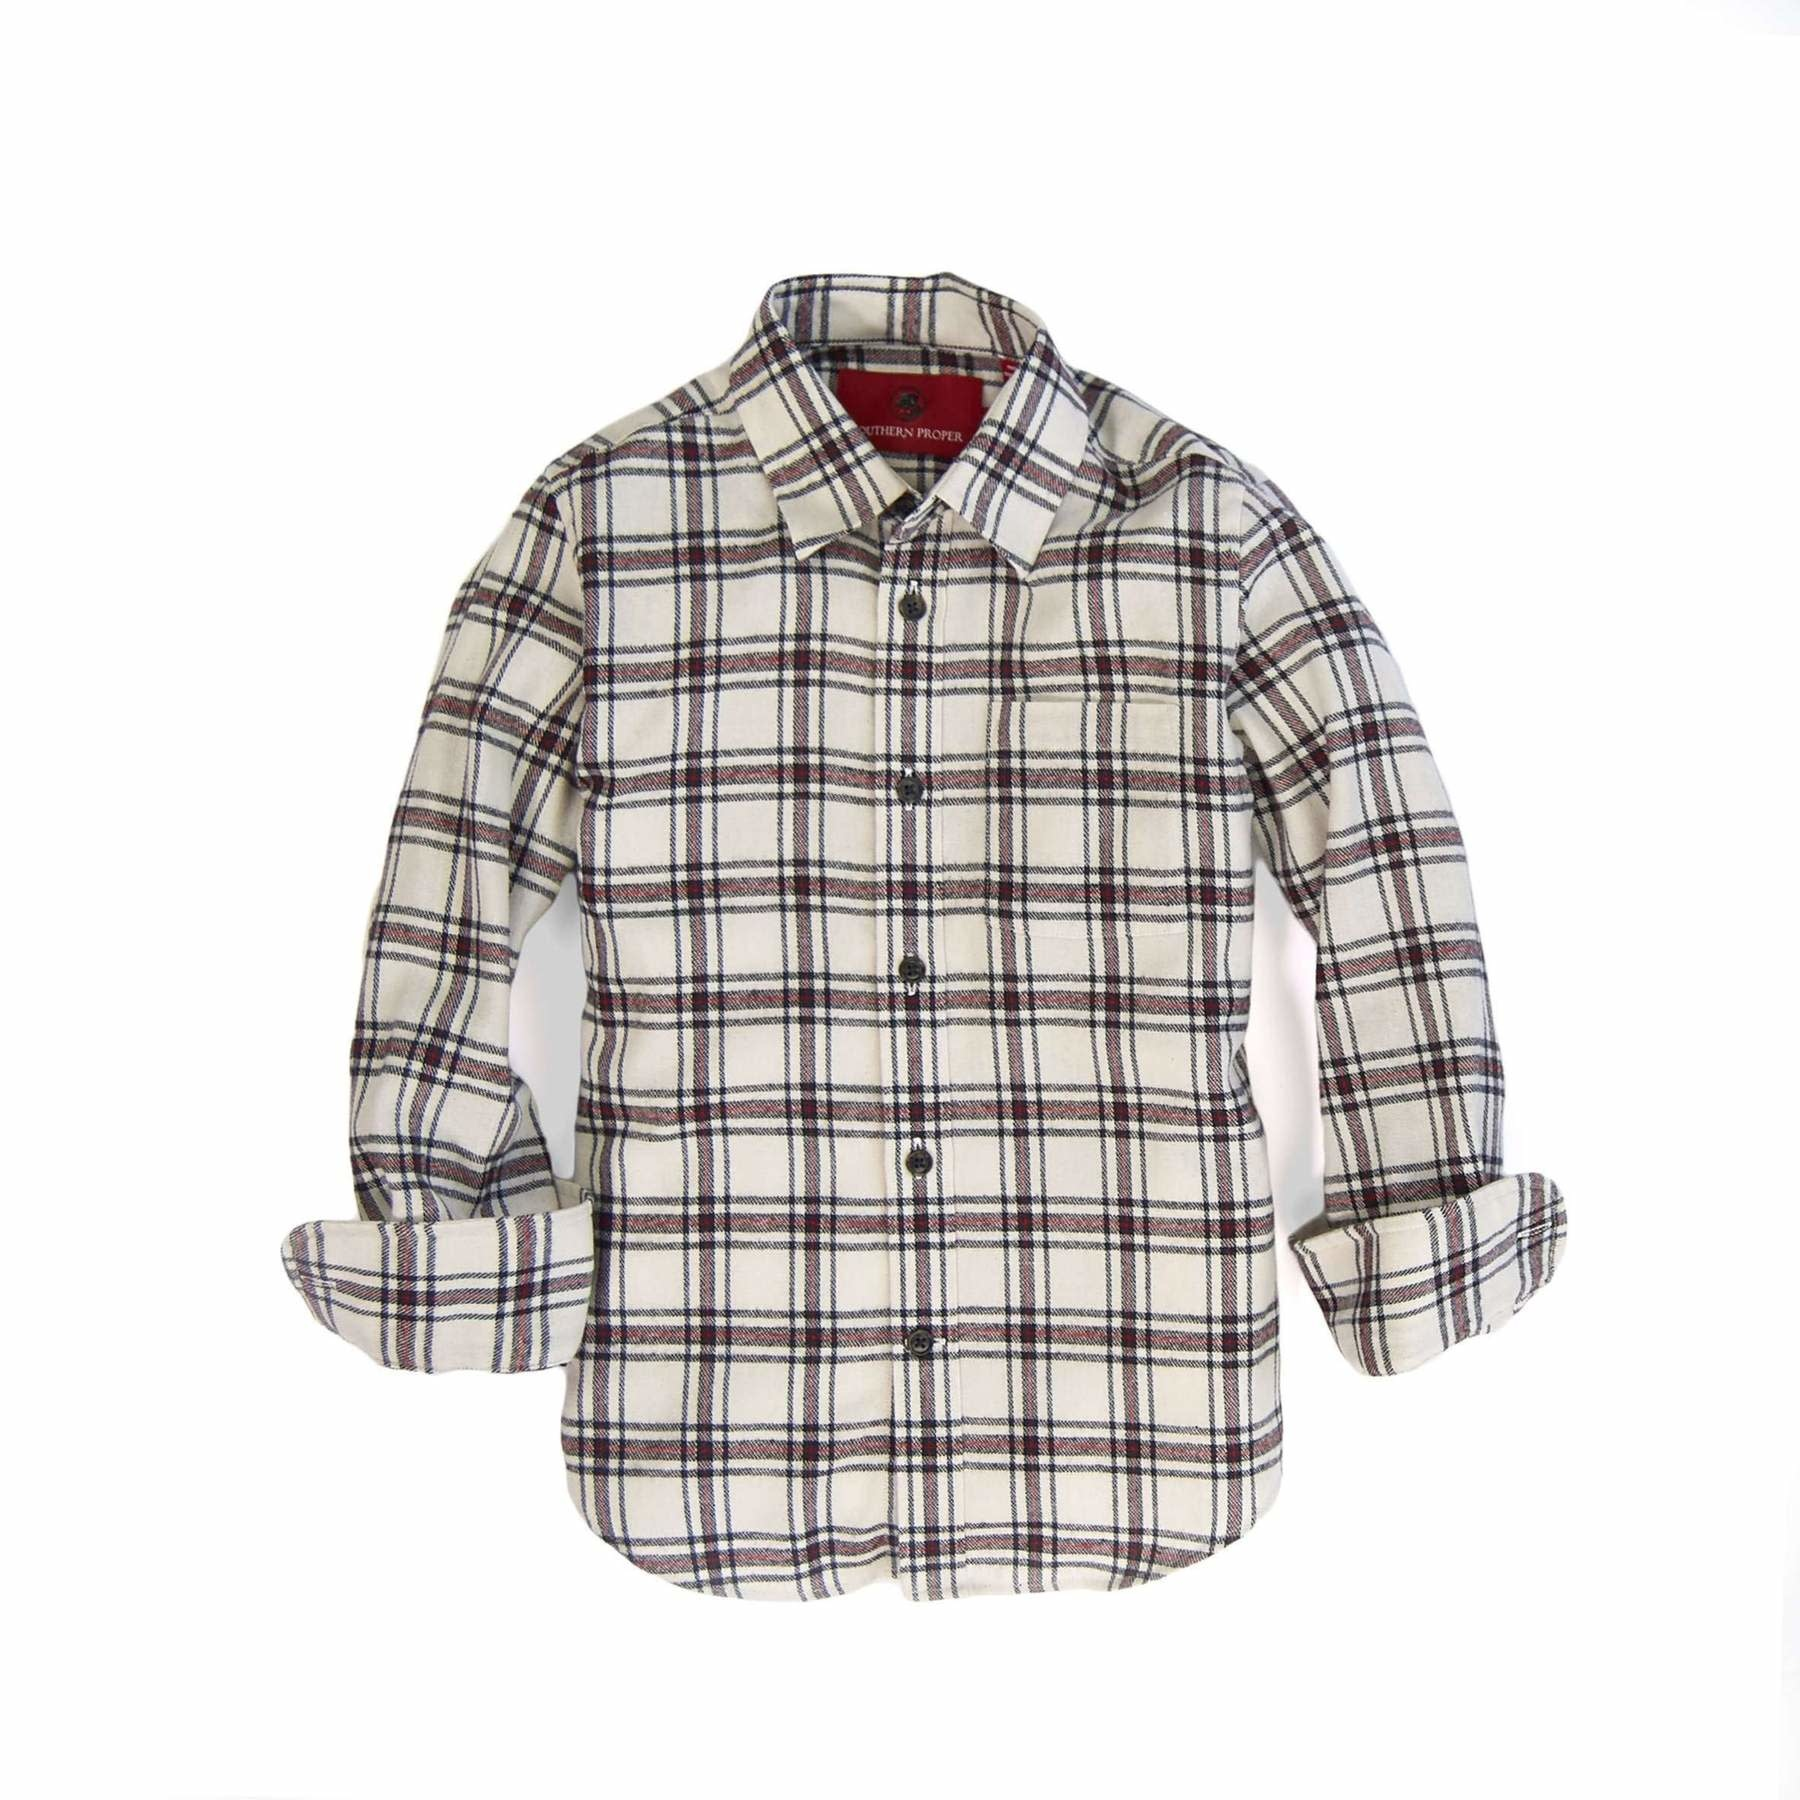 Southern Proper Clarksdale Flannel Shirt